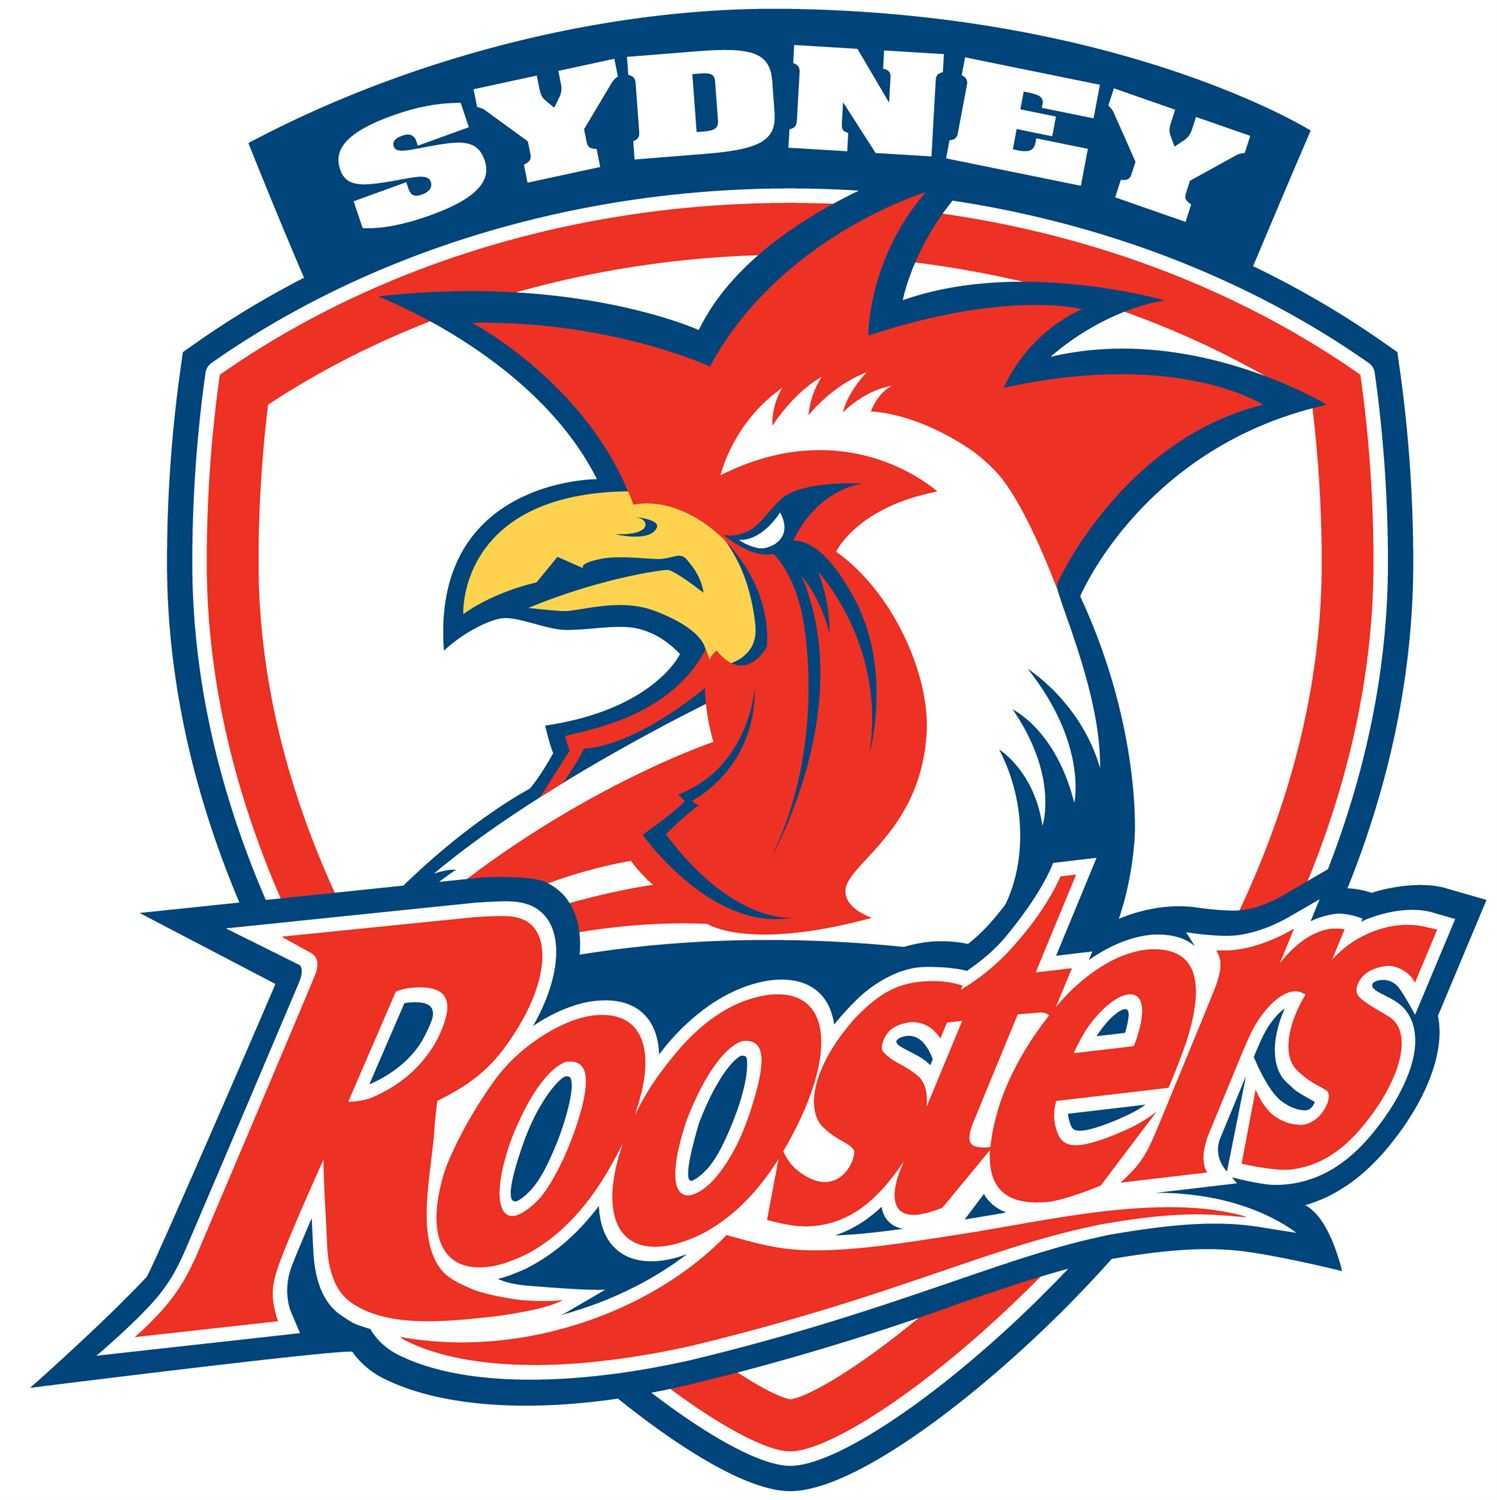 Sydney Roosters - SGB - Sydney Roosters